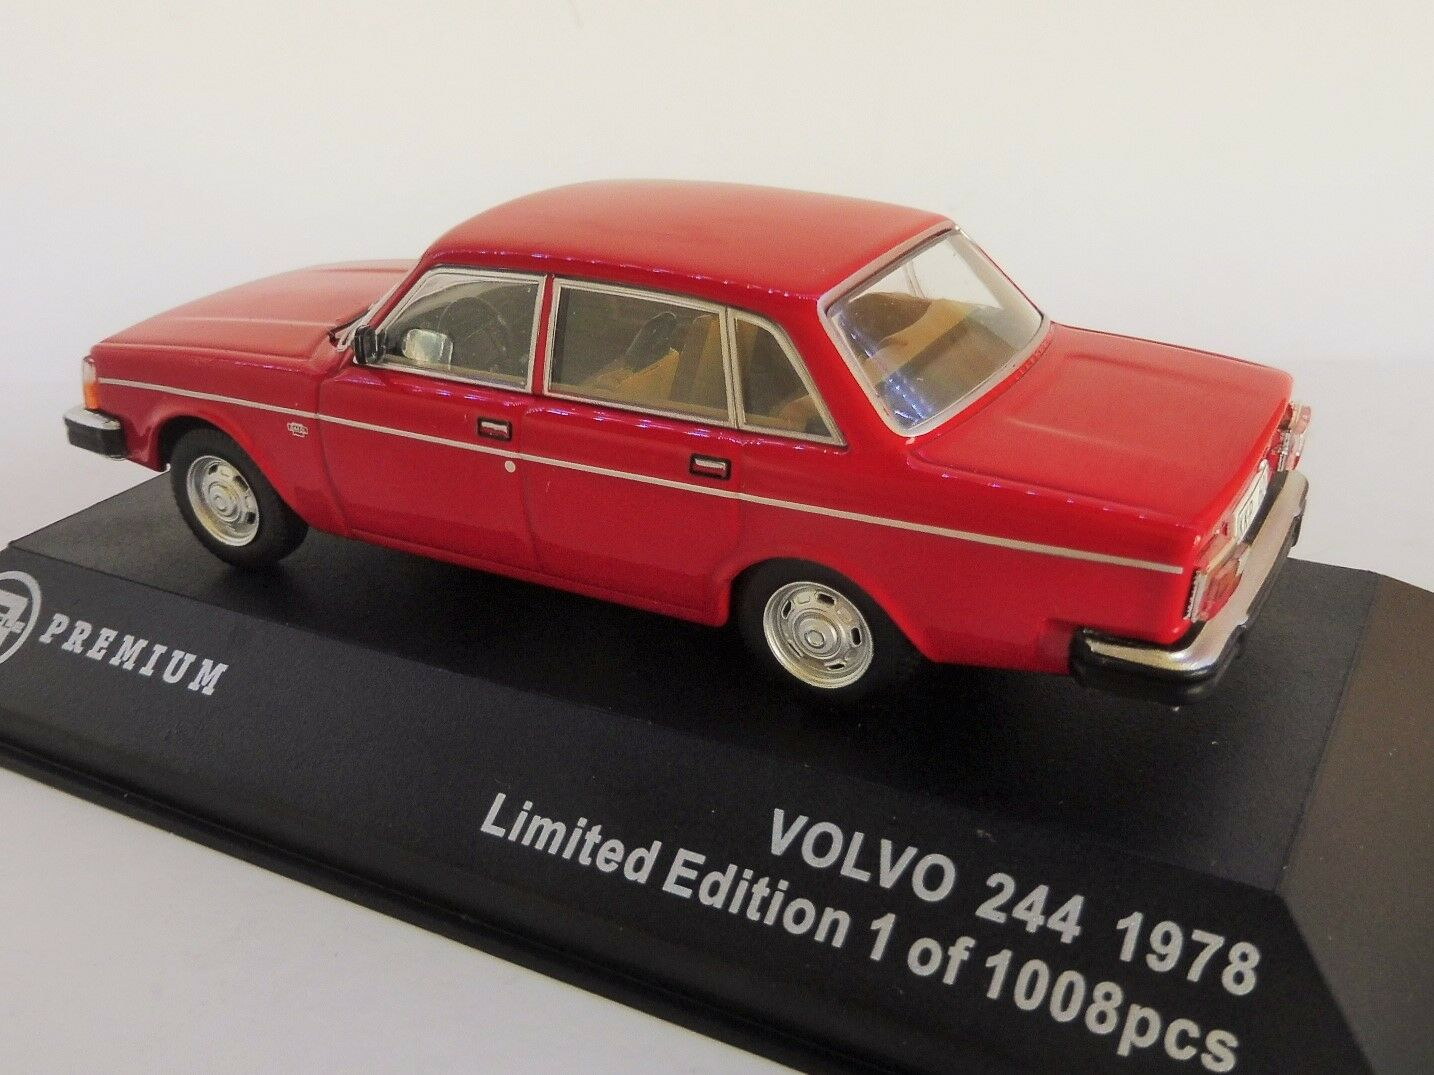 Volvo 244 dl 1978 1978 1978 rojo 1 43 triple 9 Collection t9p10016 Limited 240 b338be